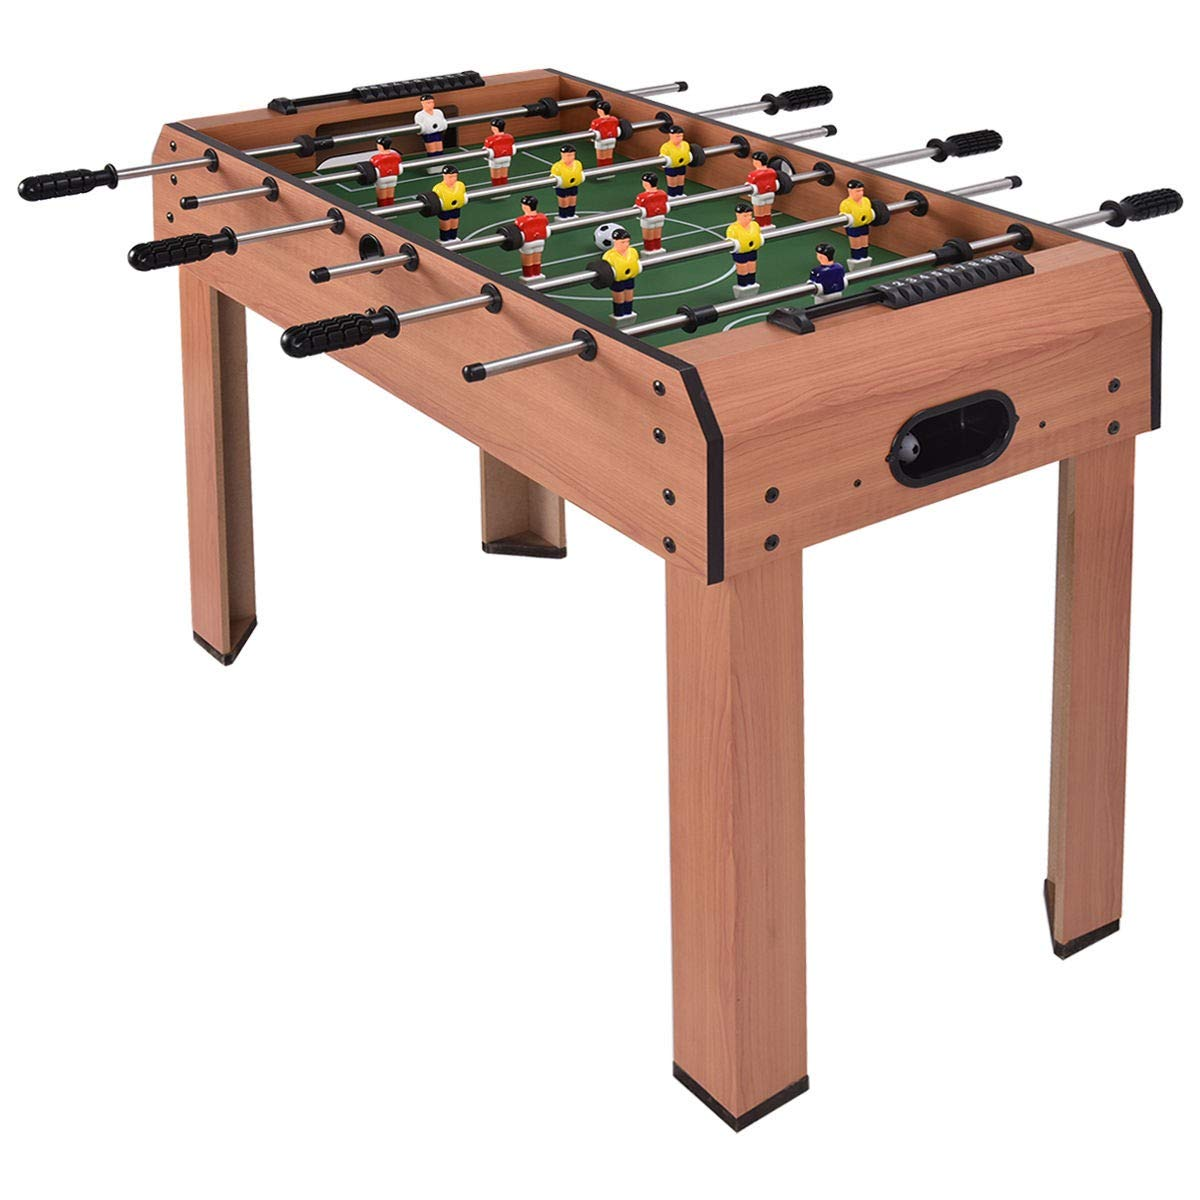 37'' Indooor Competition Game Football Table by Abbeydh